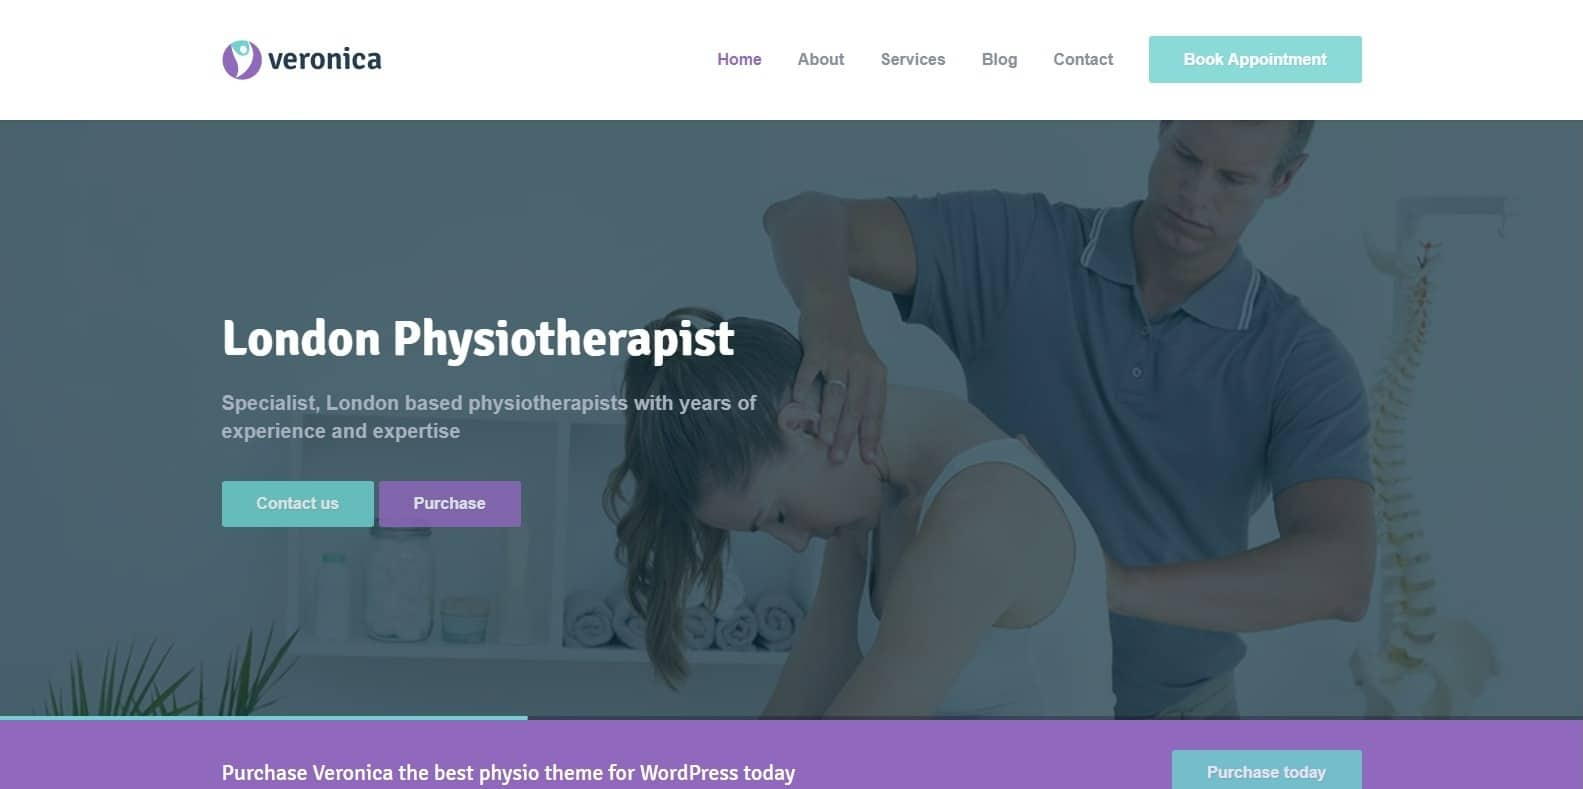 veronica-wordpress-physical-therapy-website-template